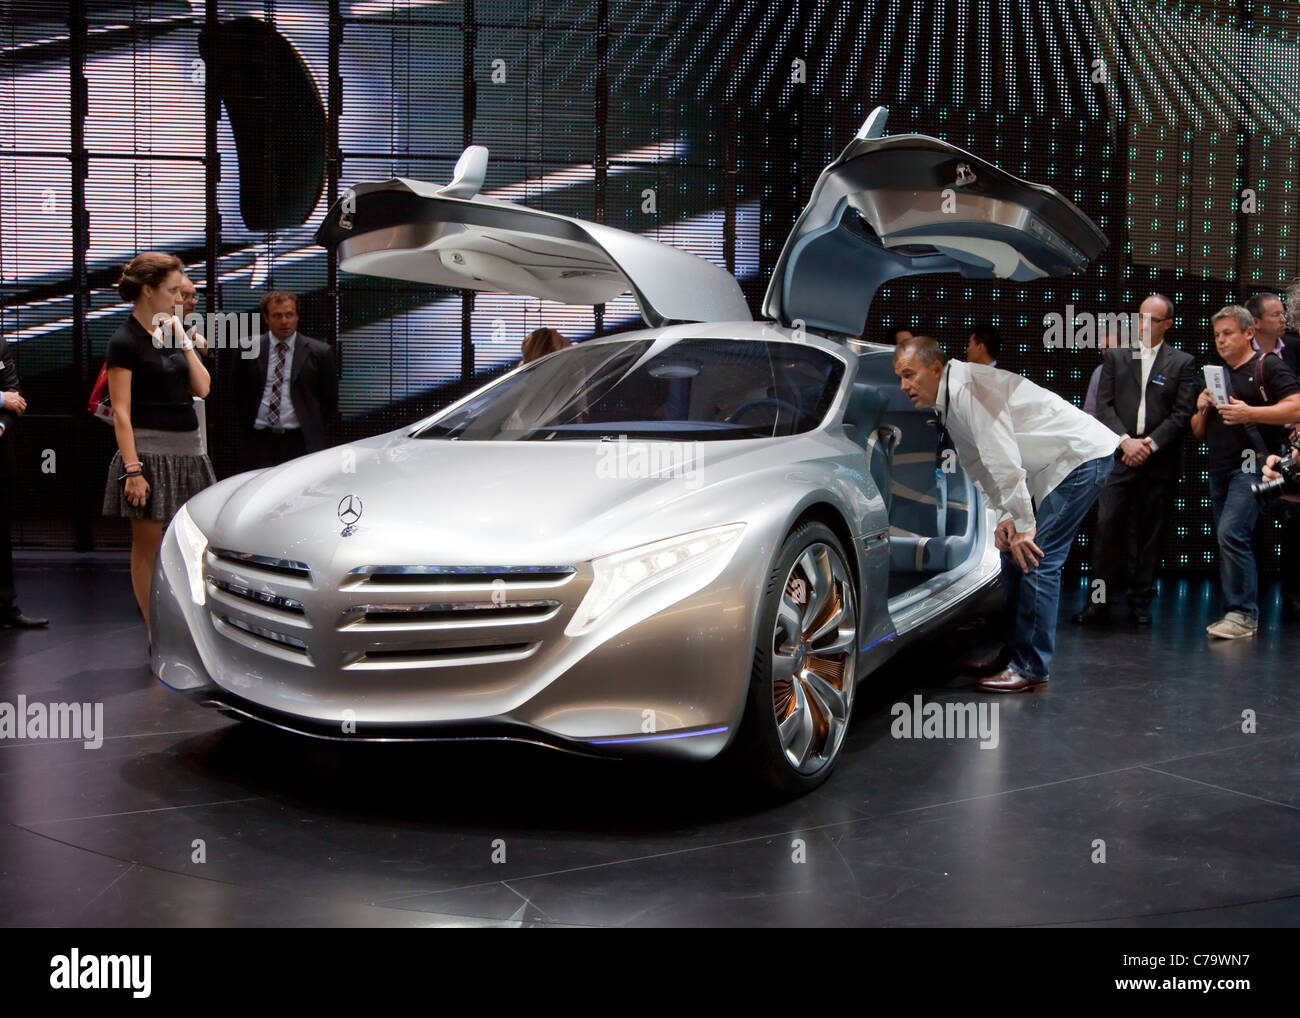 Nuova Mercedes Benz concept car F125 sull'IAA 2011 International Motor Show di Francoforte, Germania Immagini Stock